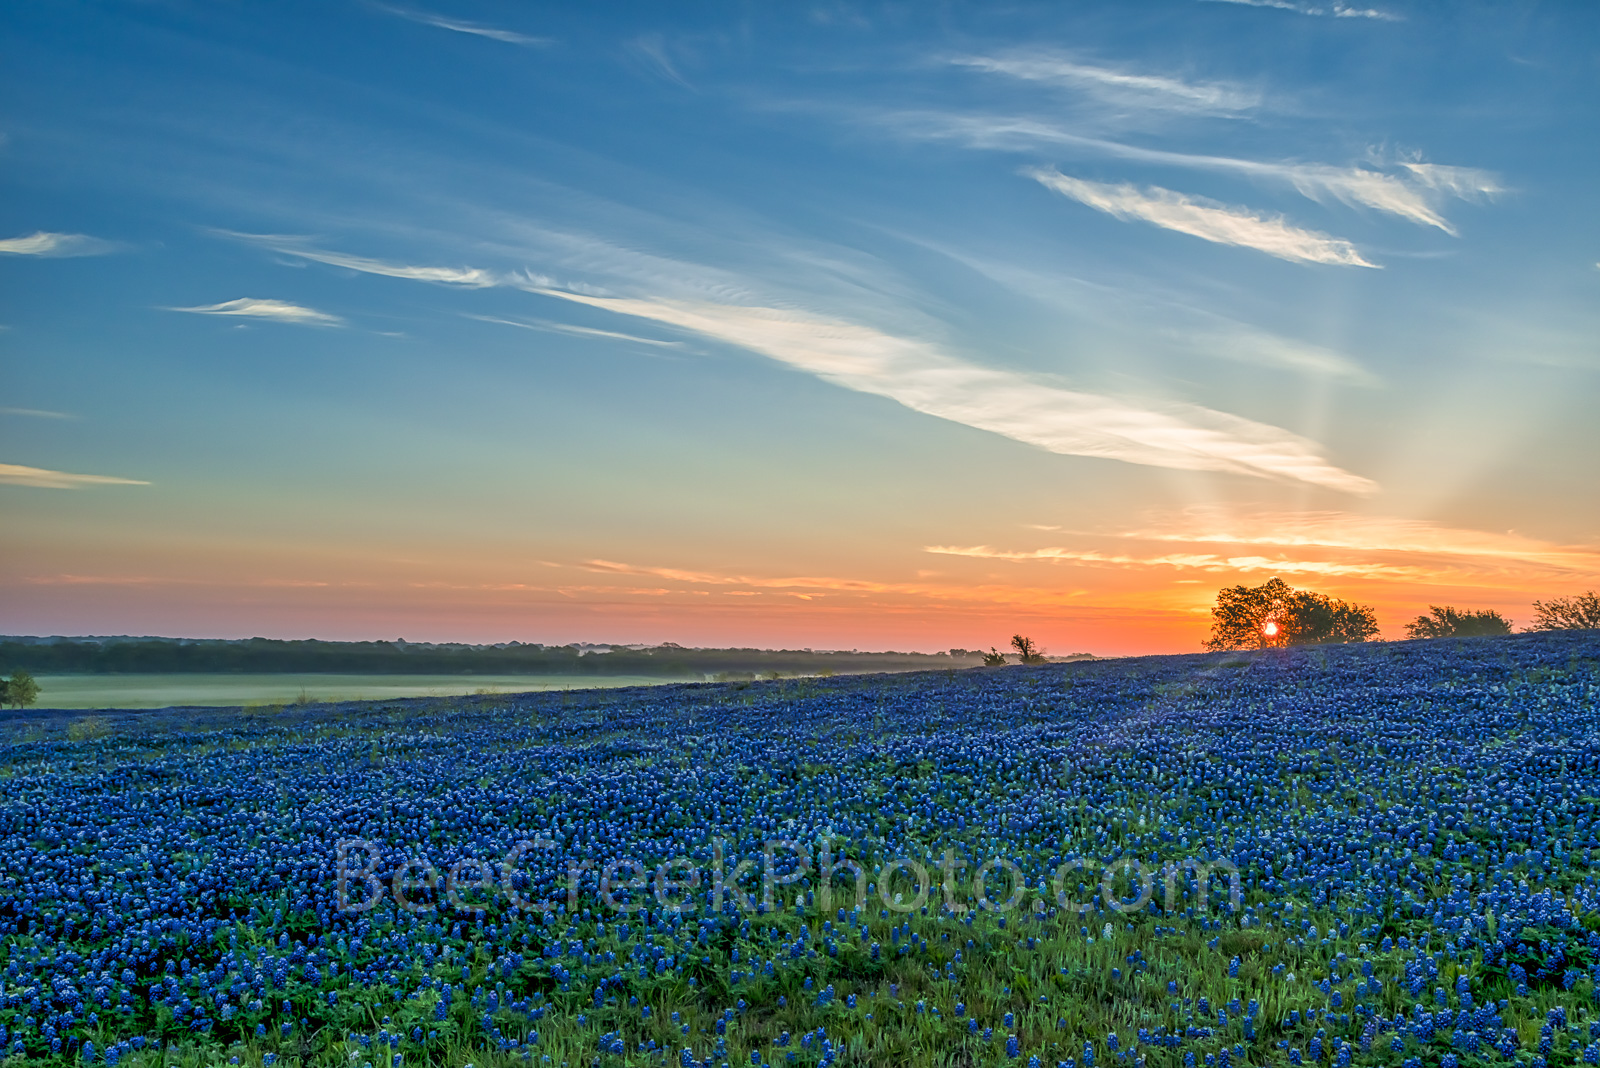 Bluebonnet pictures, bluebonnet images, Texas Bluebonnets, blue bonnet sunrise, image of bluebonnets, texas, bluebonnets, Ennis, sunset, texas landscape, pasture, fileld of bluebonnets, ranch, images , photo